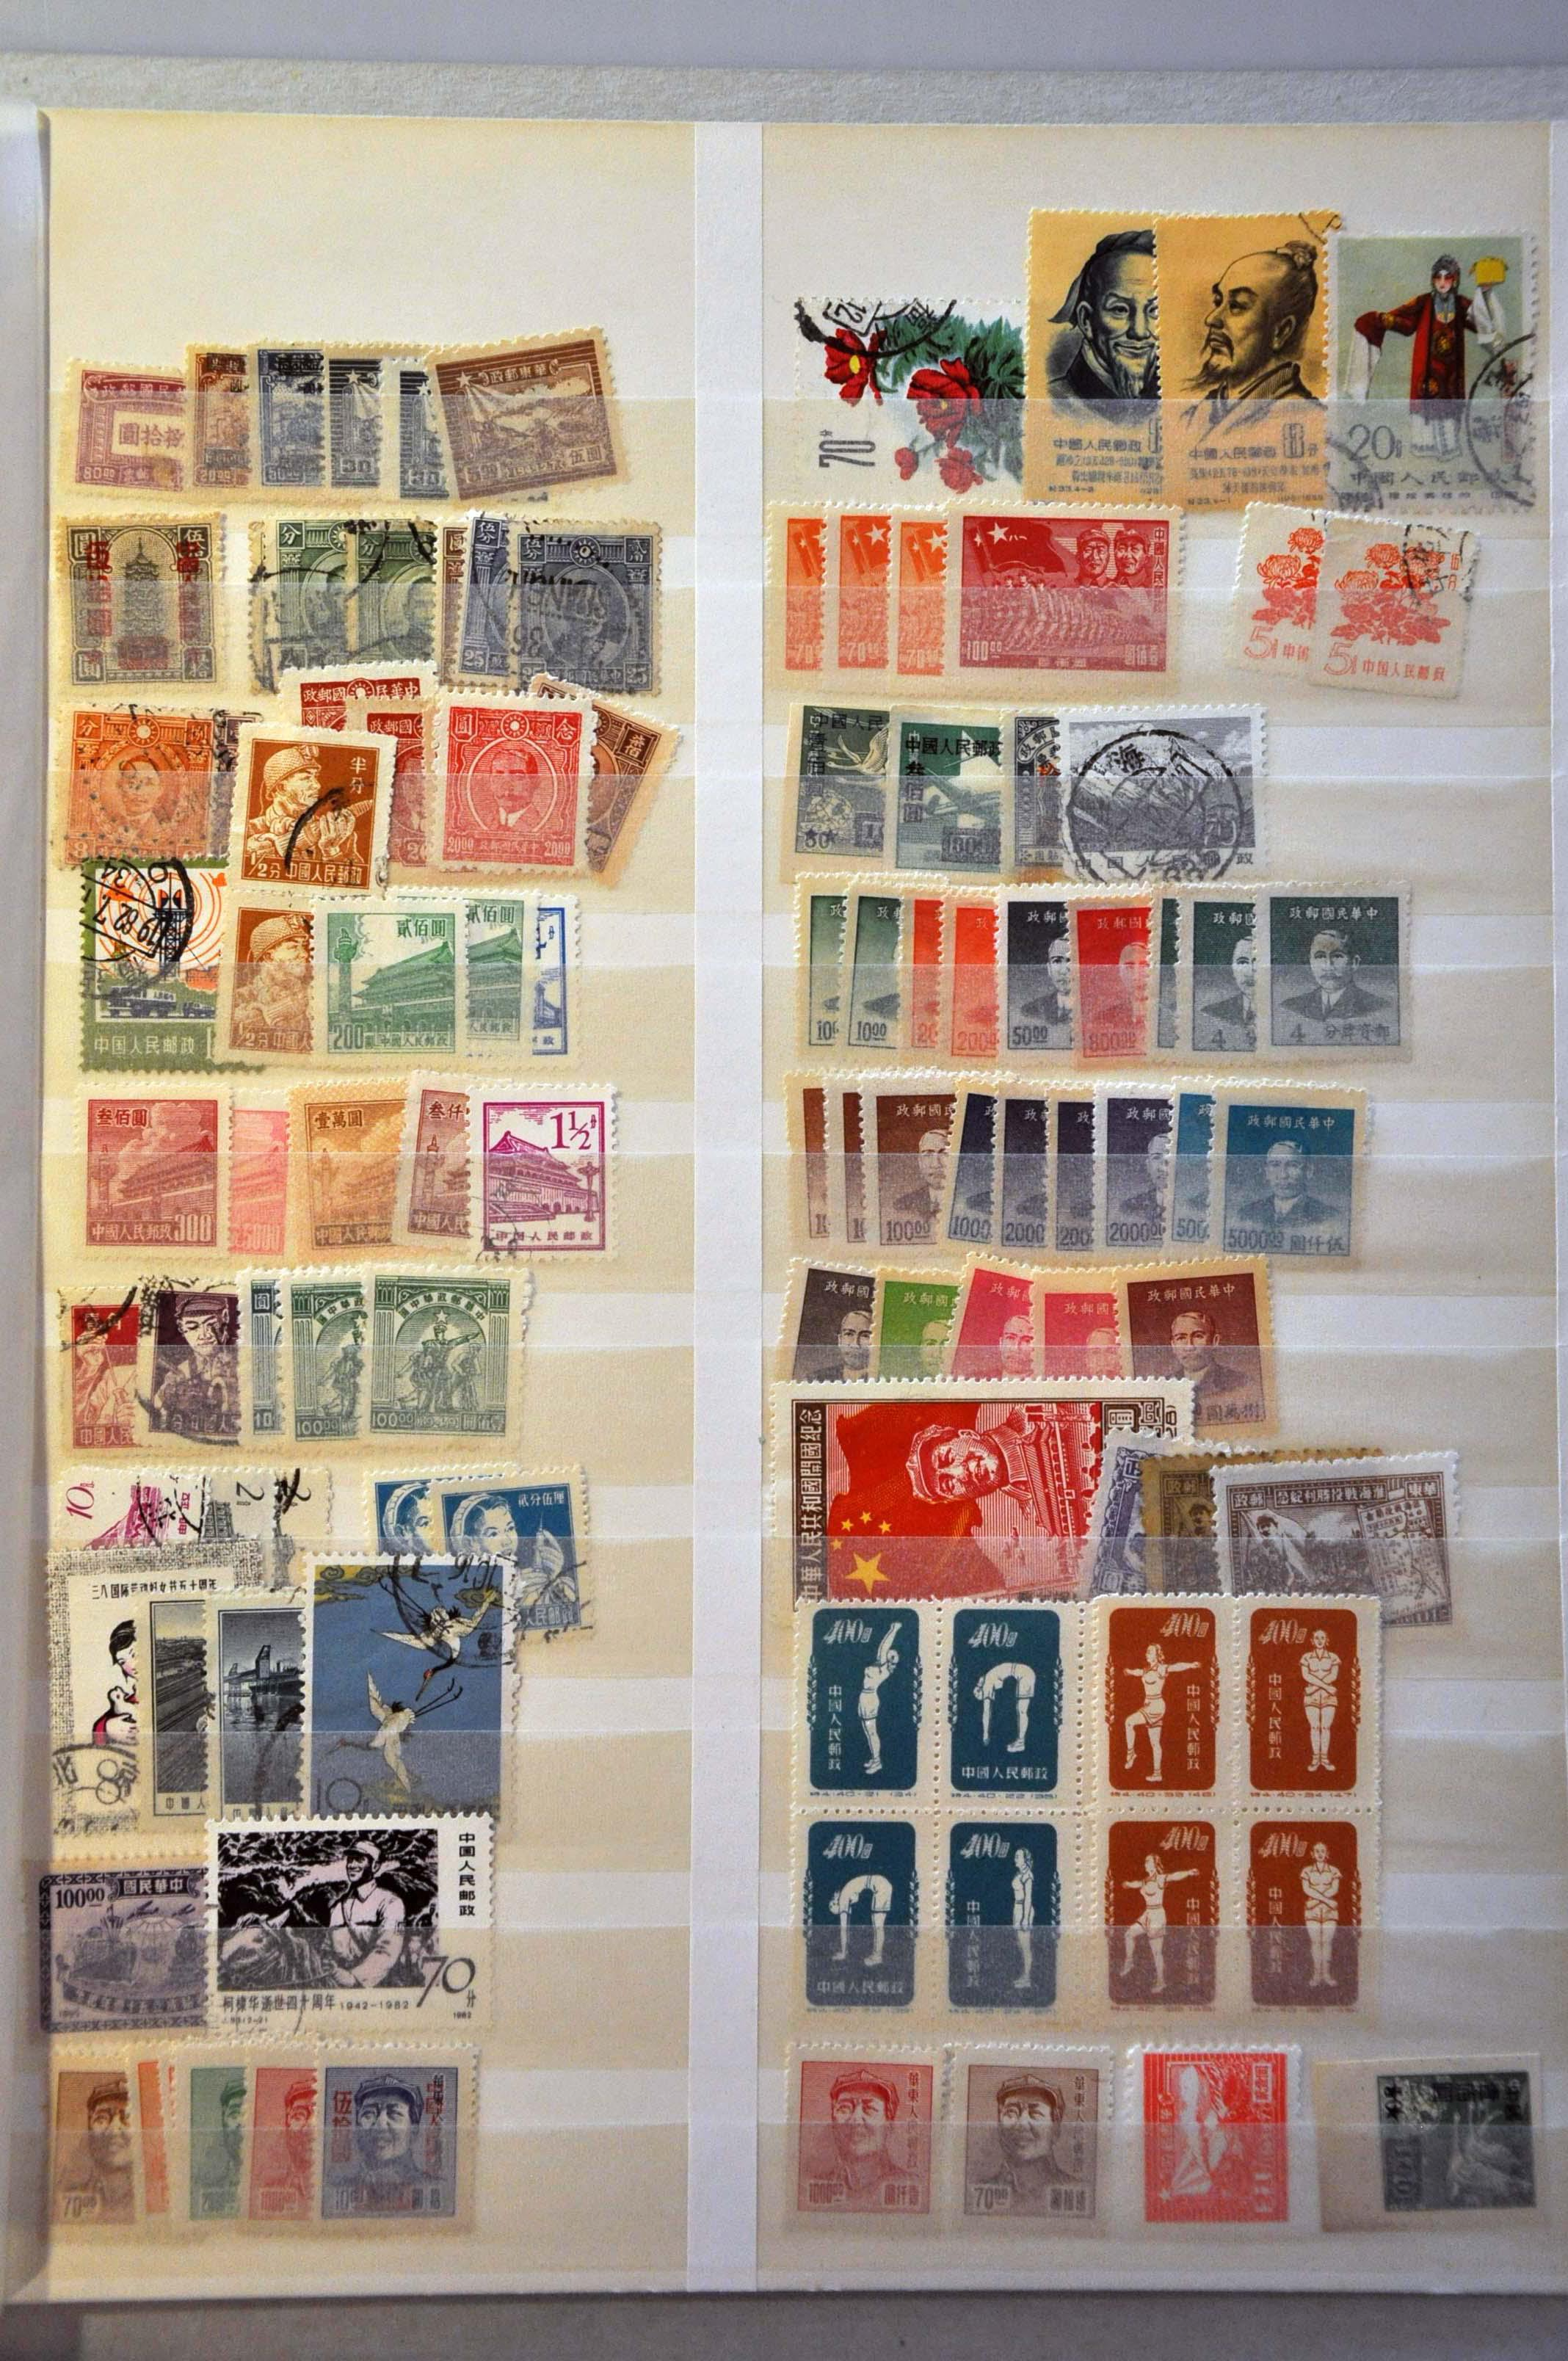 Lot 260 - Outside Europa China -  Corinphila Veilingen Auction 244 -Netherlands and former colonies, WW2 Postal History, Bosnia, German and British colonies, Egypt. - Day 1